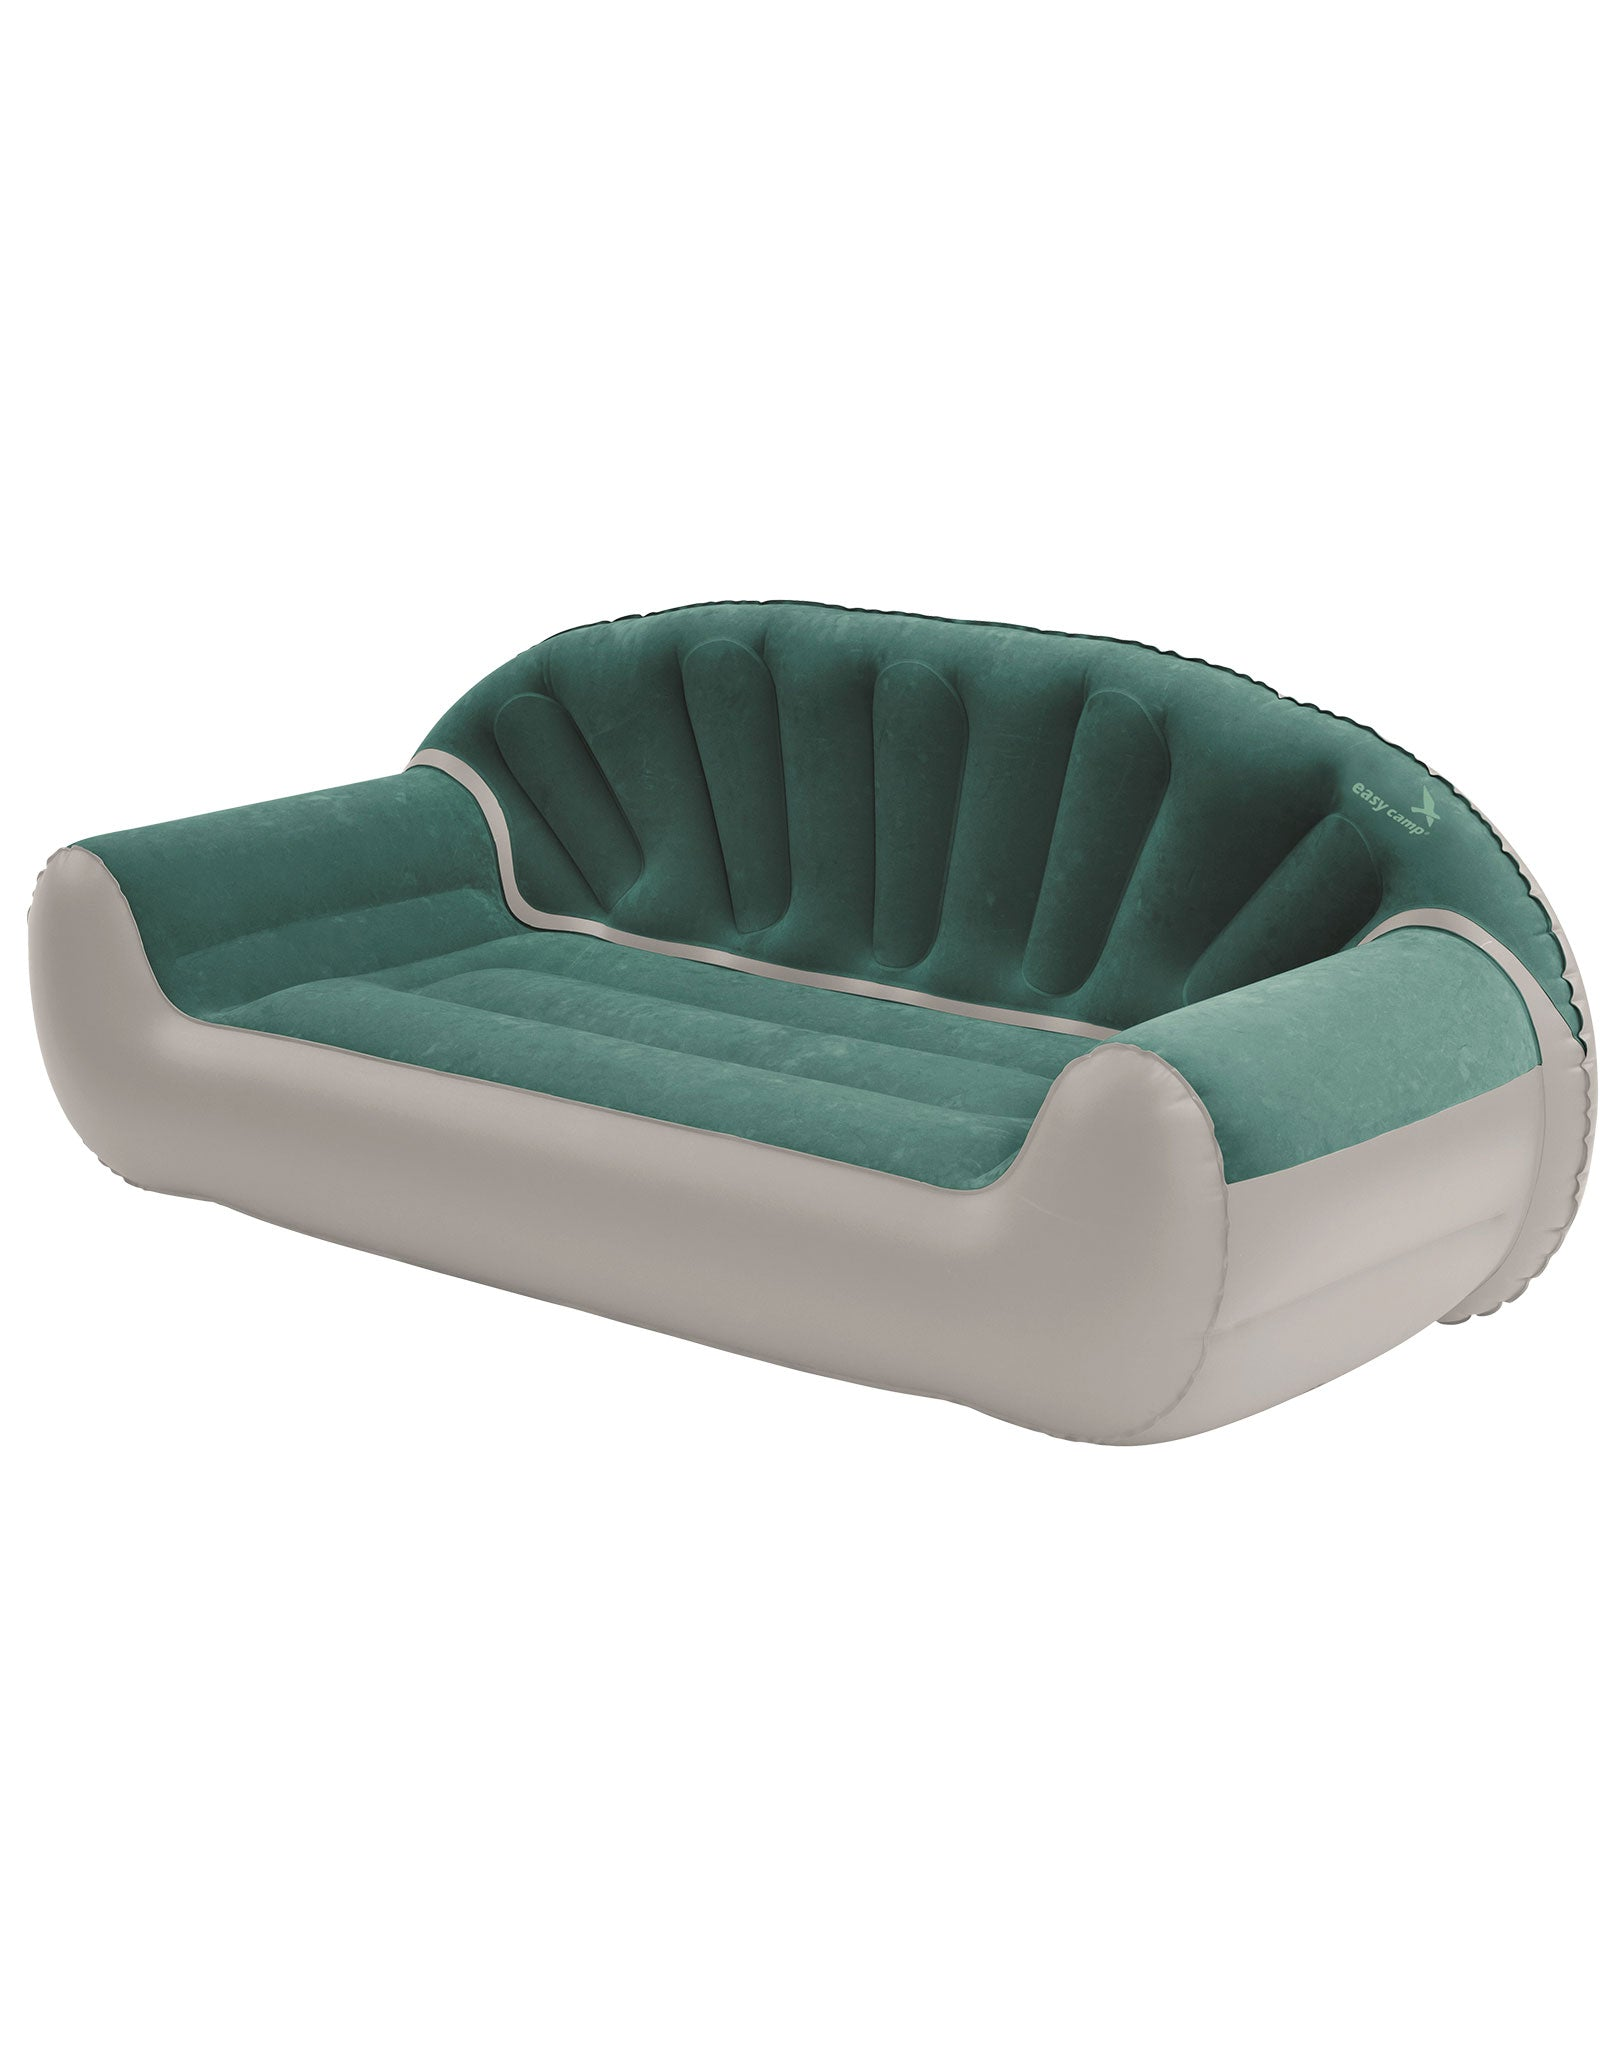 Image of Easy Camp Comfy Inflatable Sofa